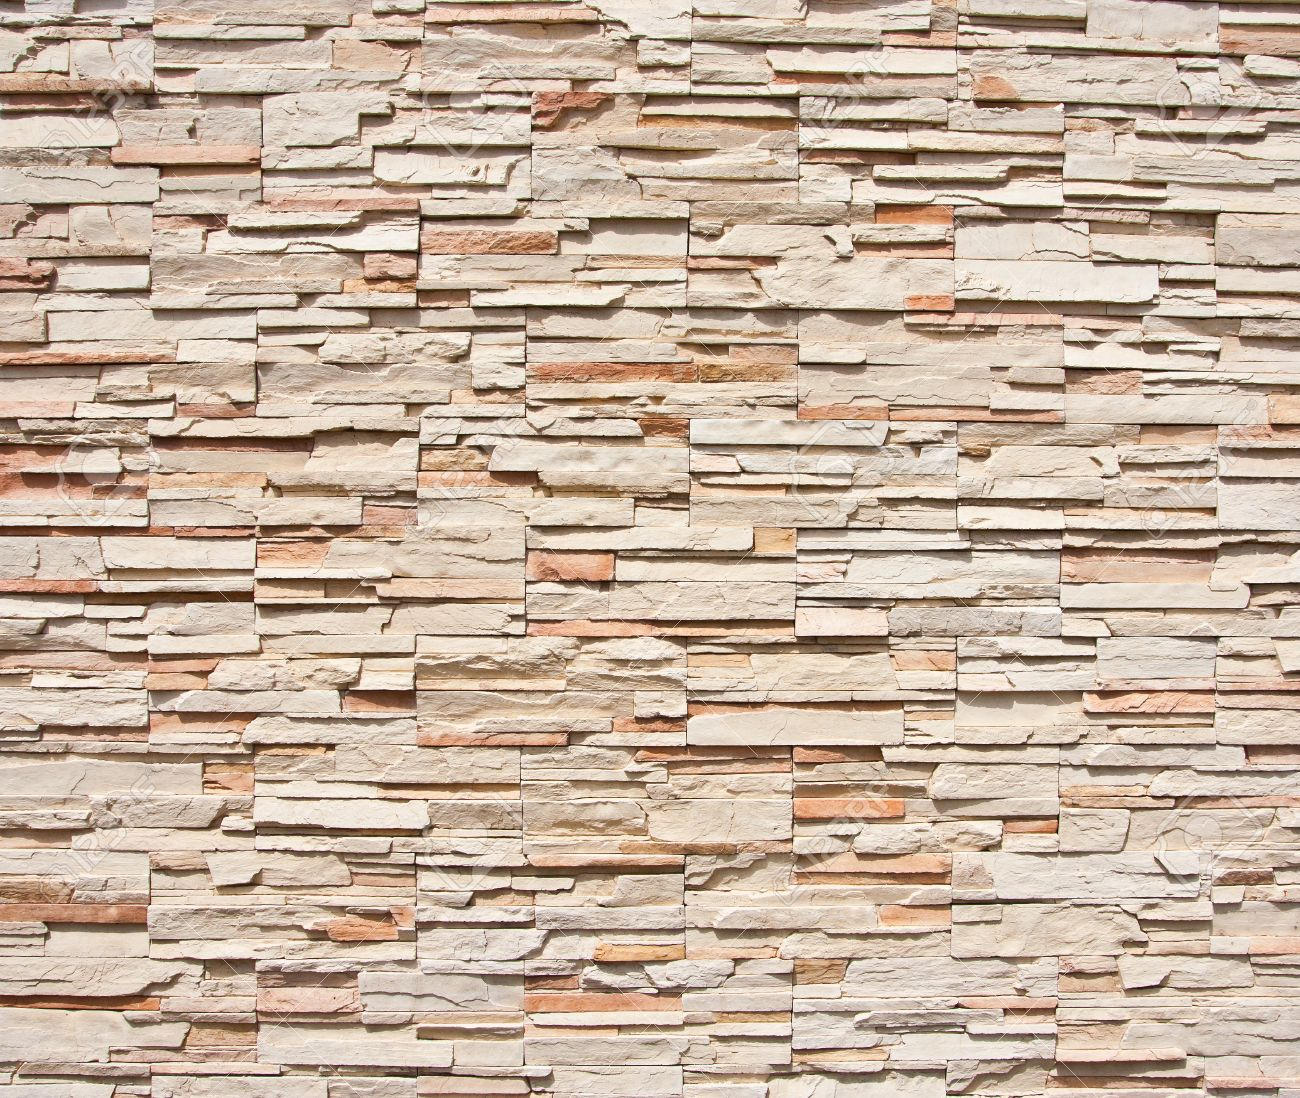 Uncategorized Modern Brick Walls modern brick walls interior design wall background stock photo 8529818